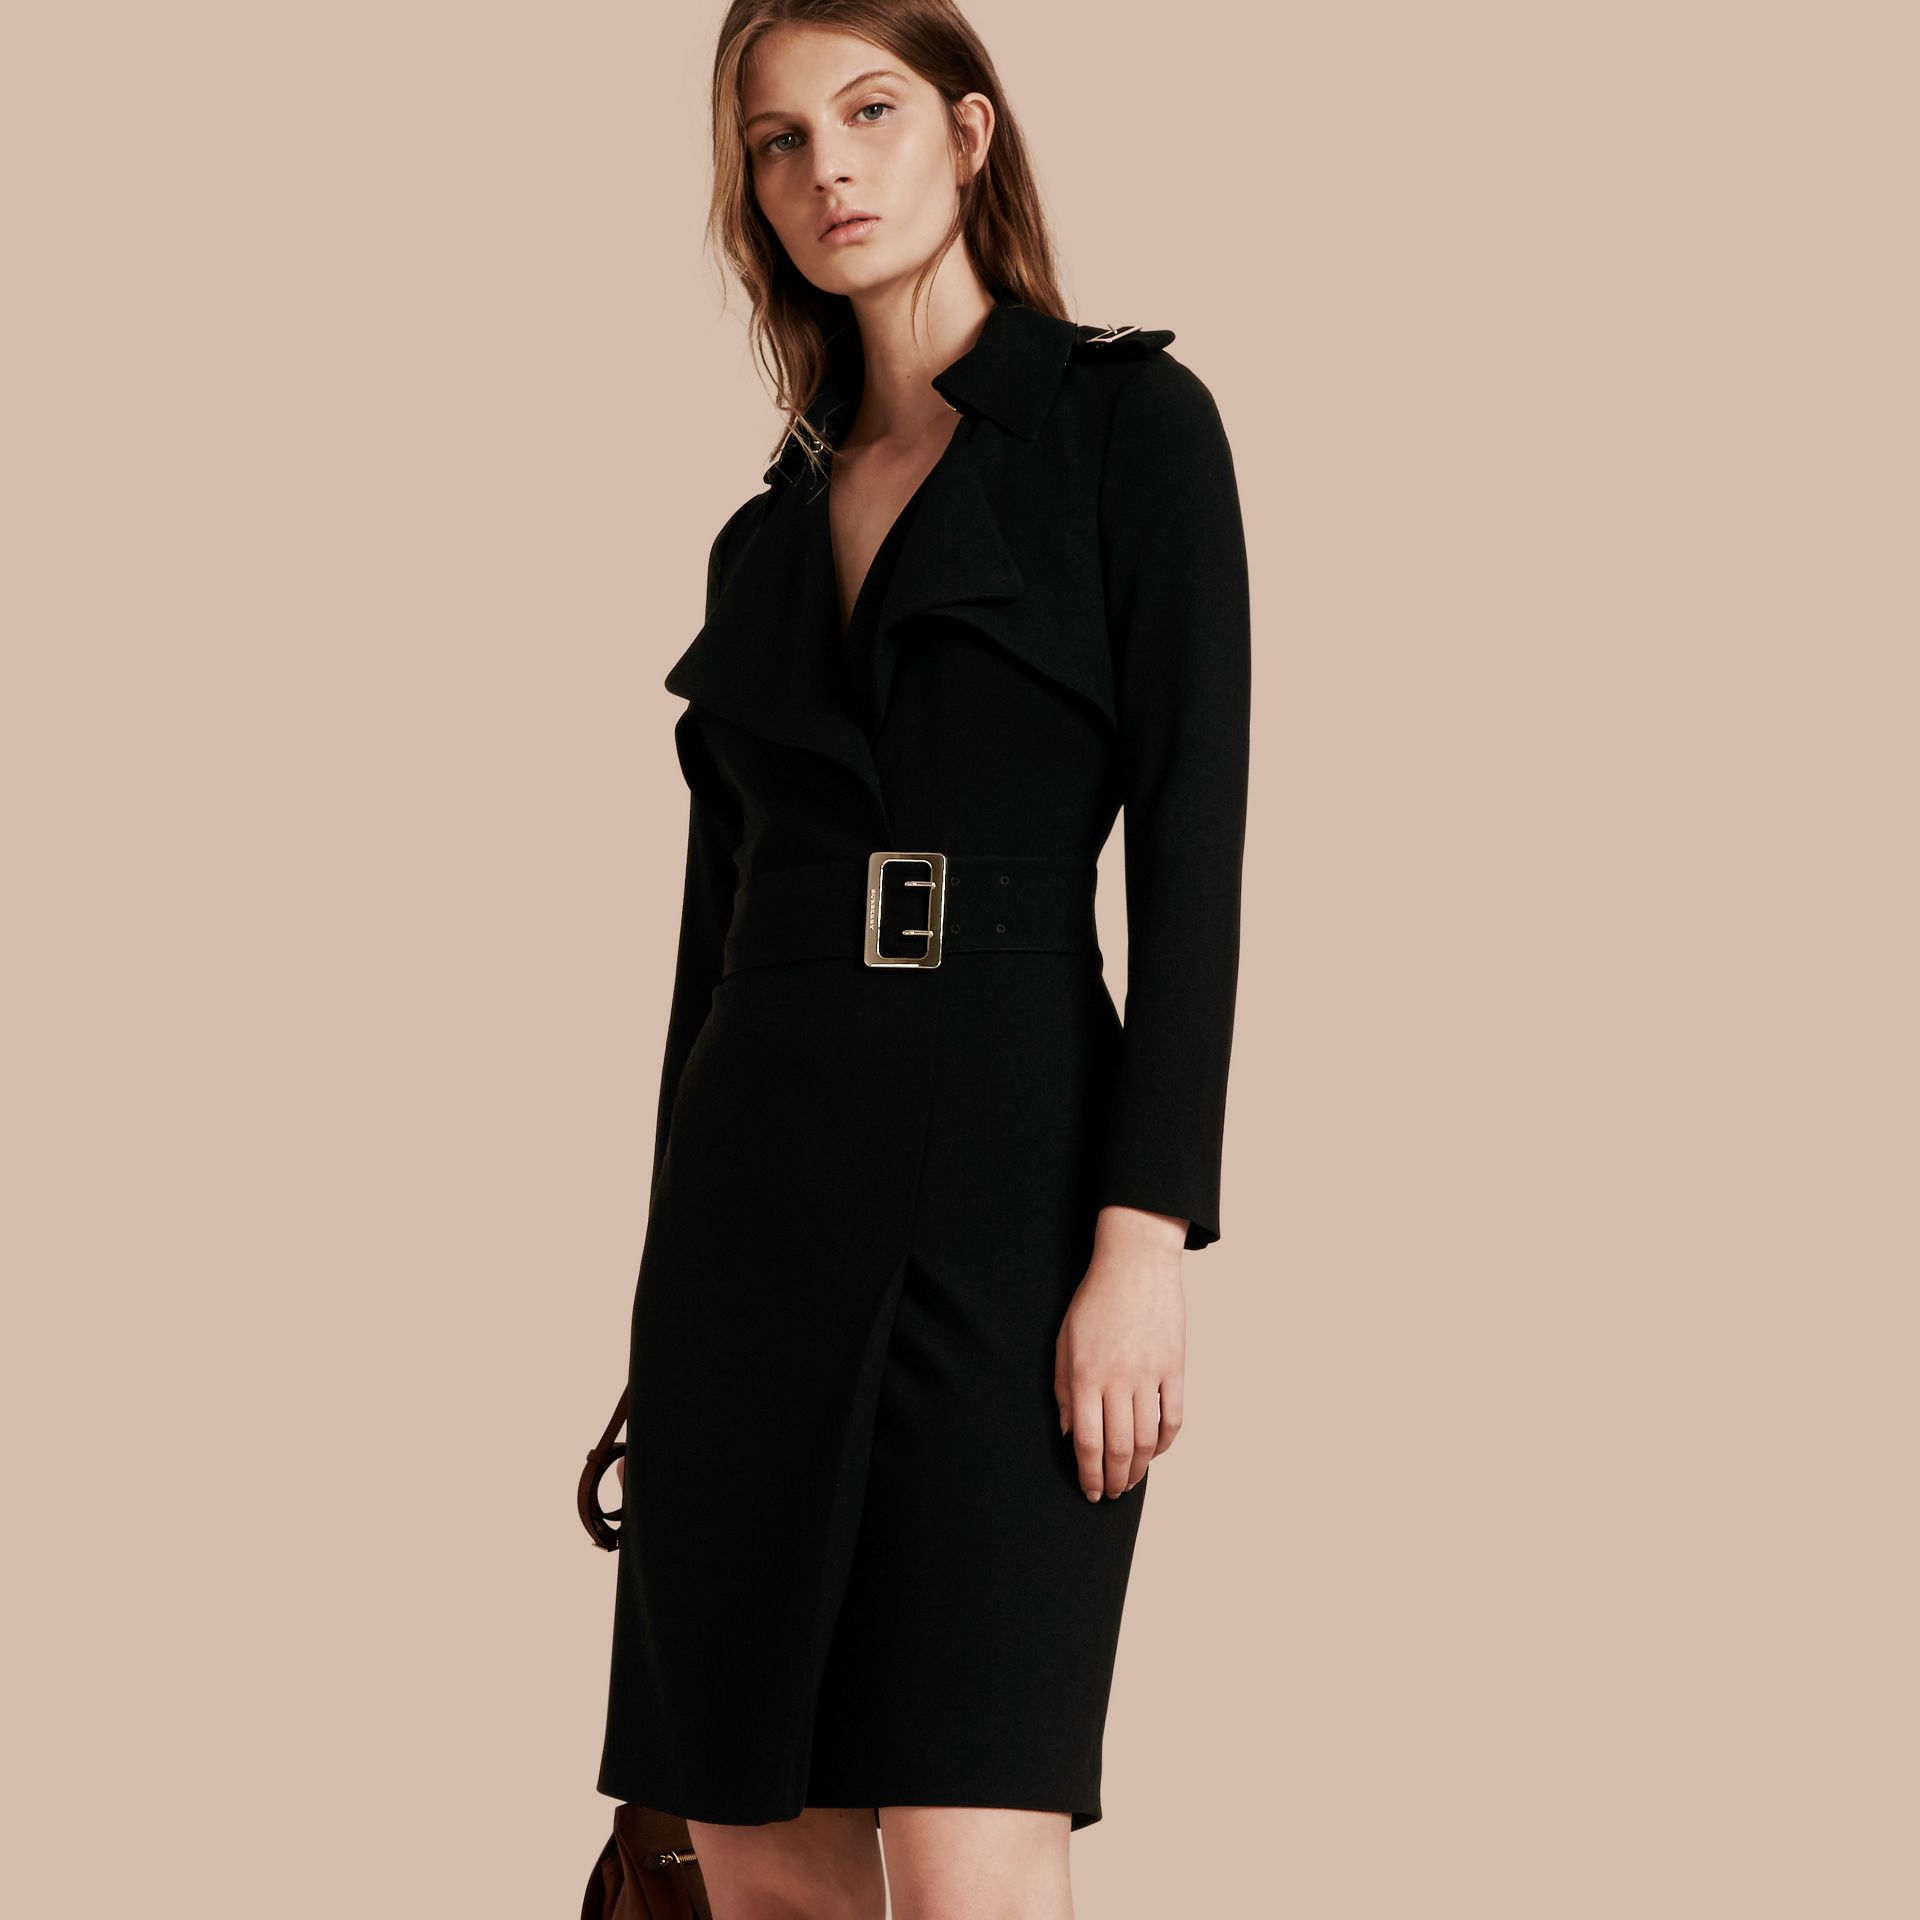 Buckle Detail Satin-back Crepe Trench Dress Black - gallery image 1